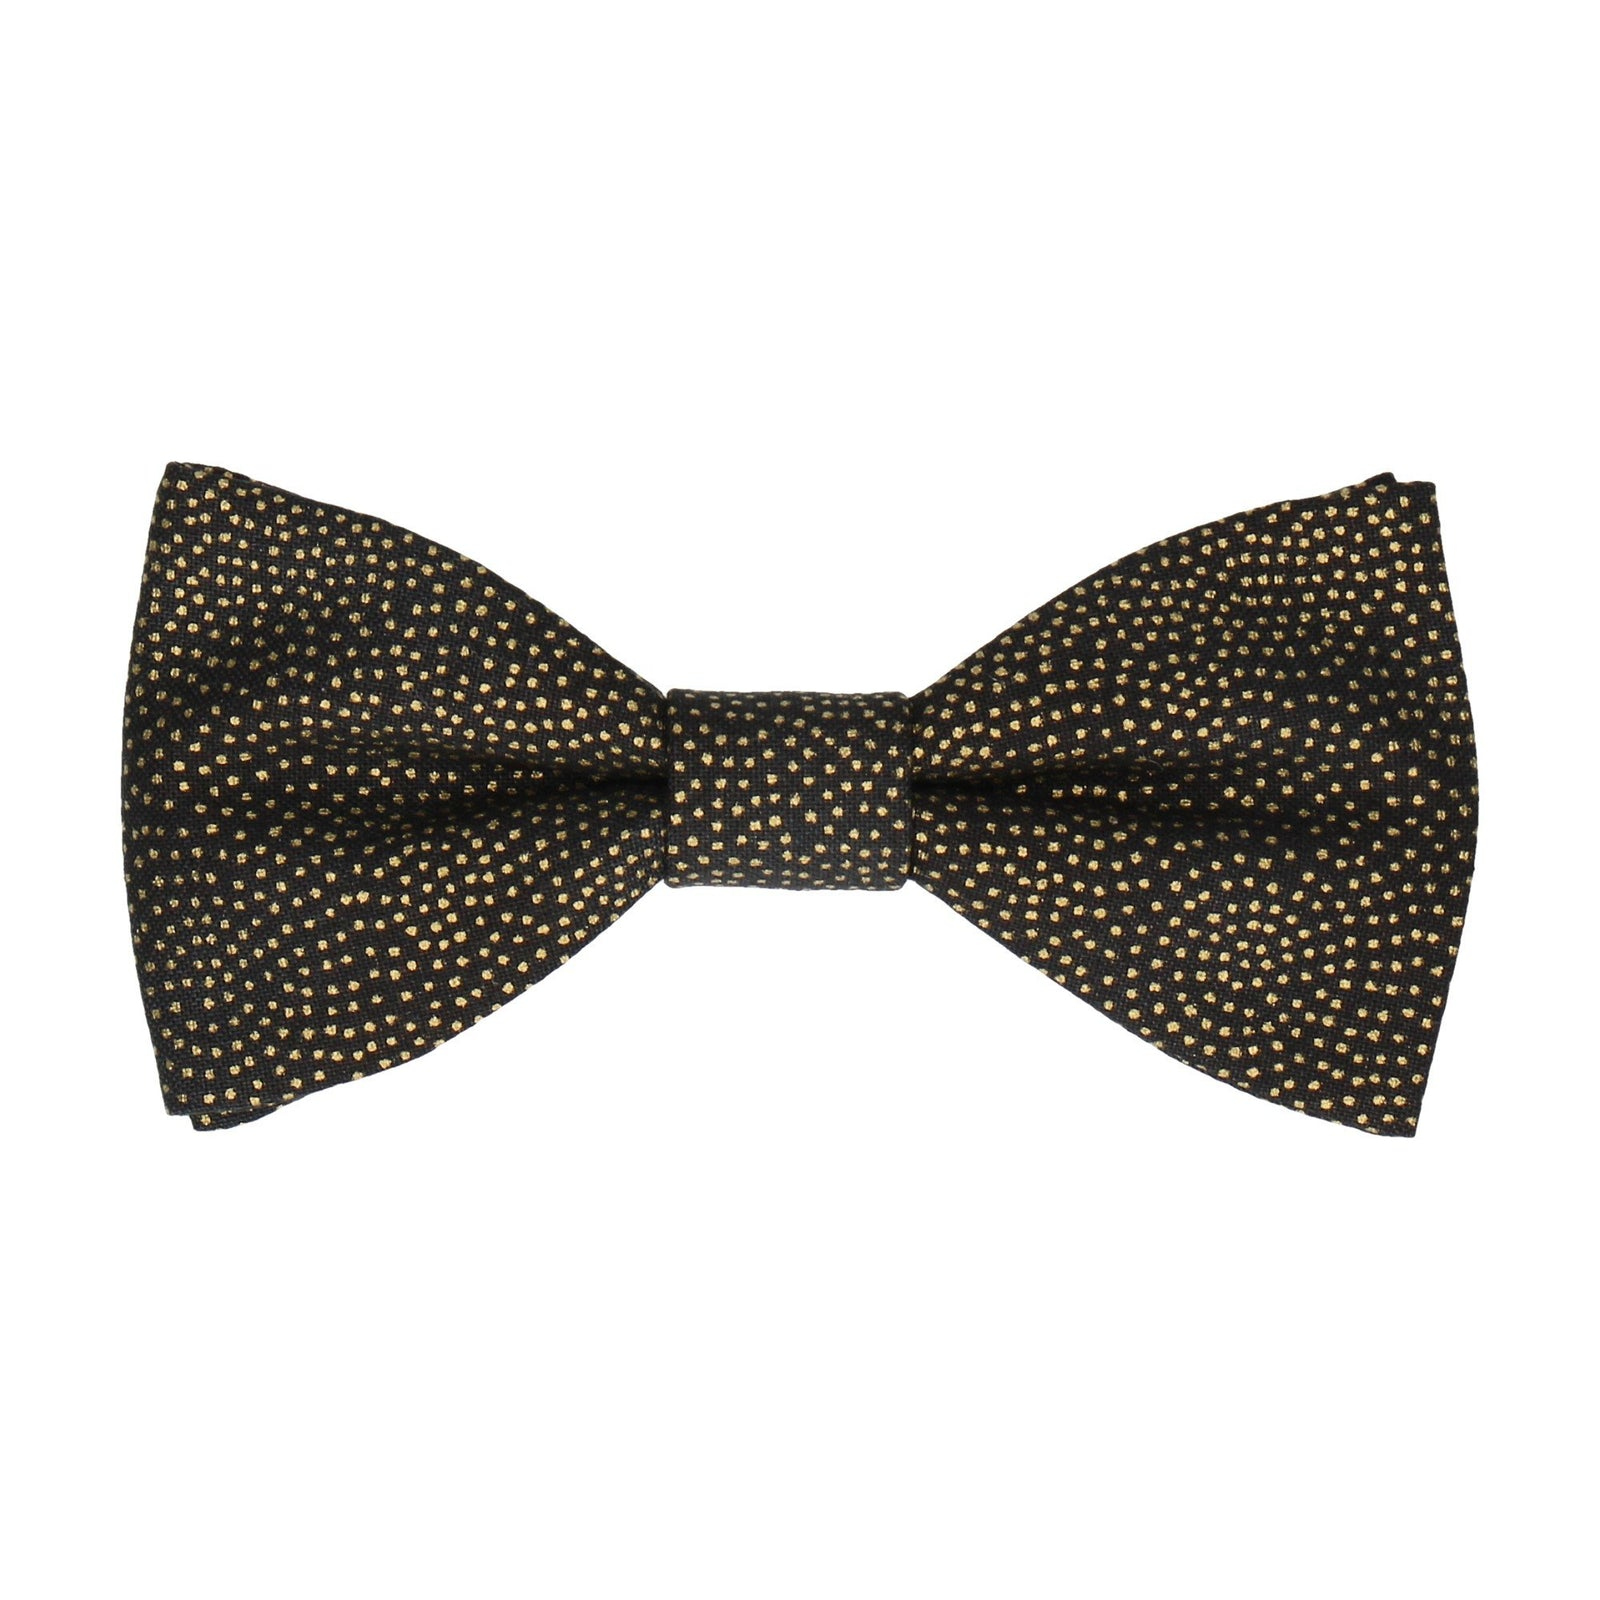 Doctor Who Bow Tie Replica | Spyfall | 13th Doctor